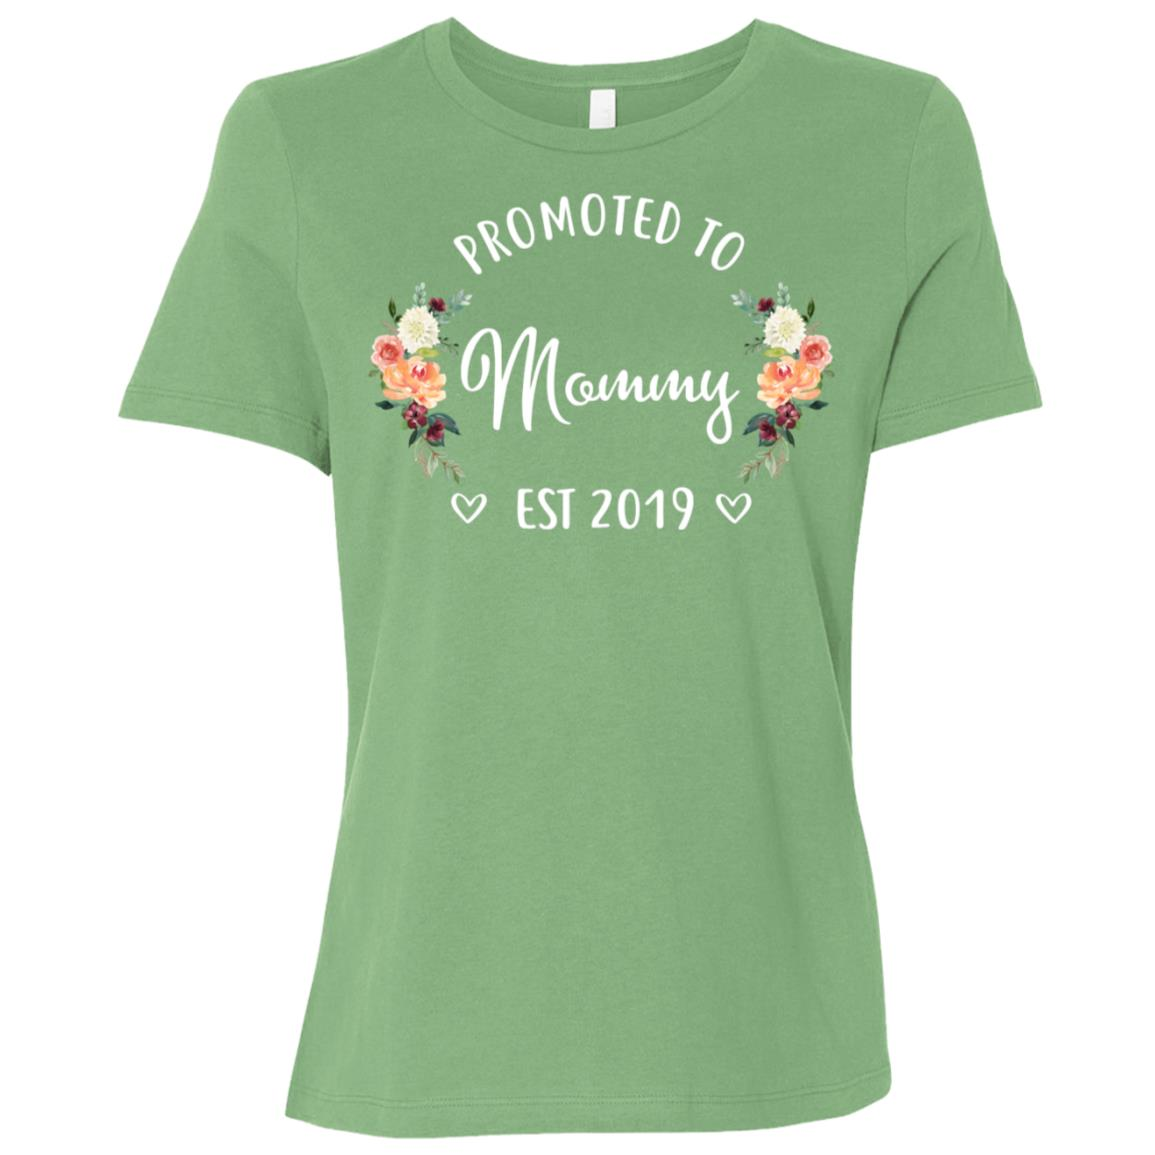 Promoted to Mommy Est 2019 New Mommy Women Short Sleeve T-Shirt